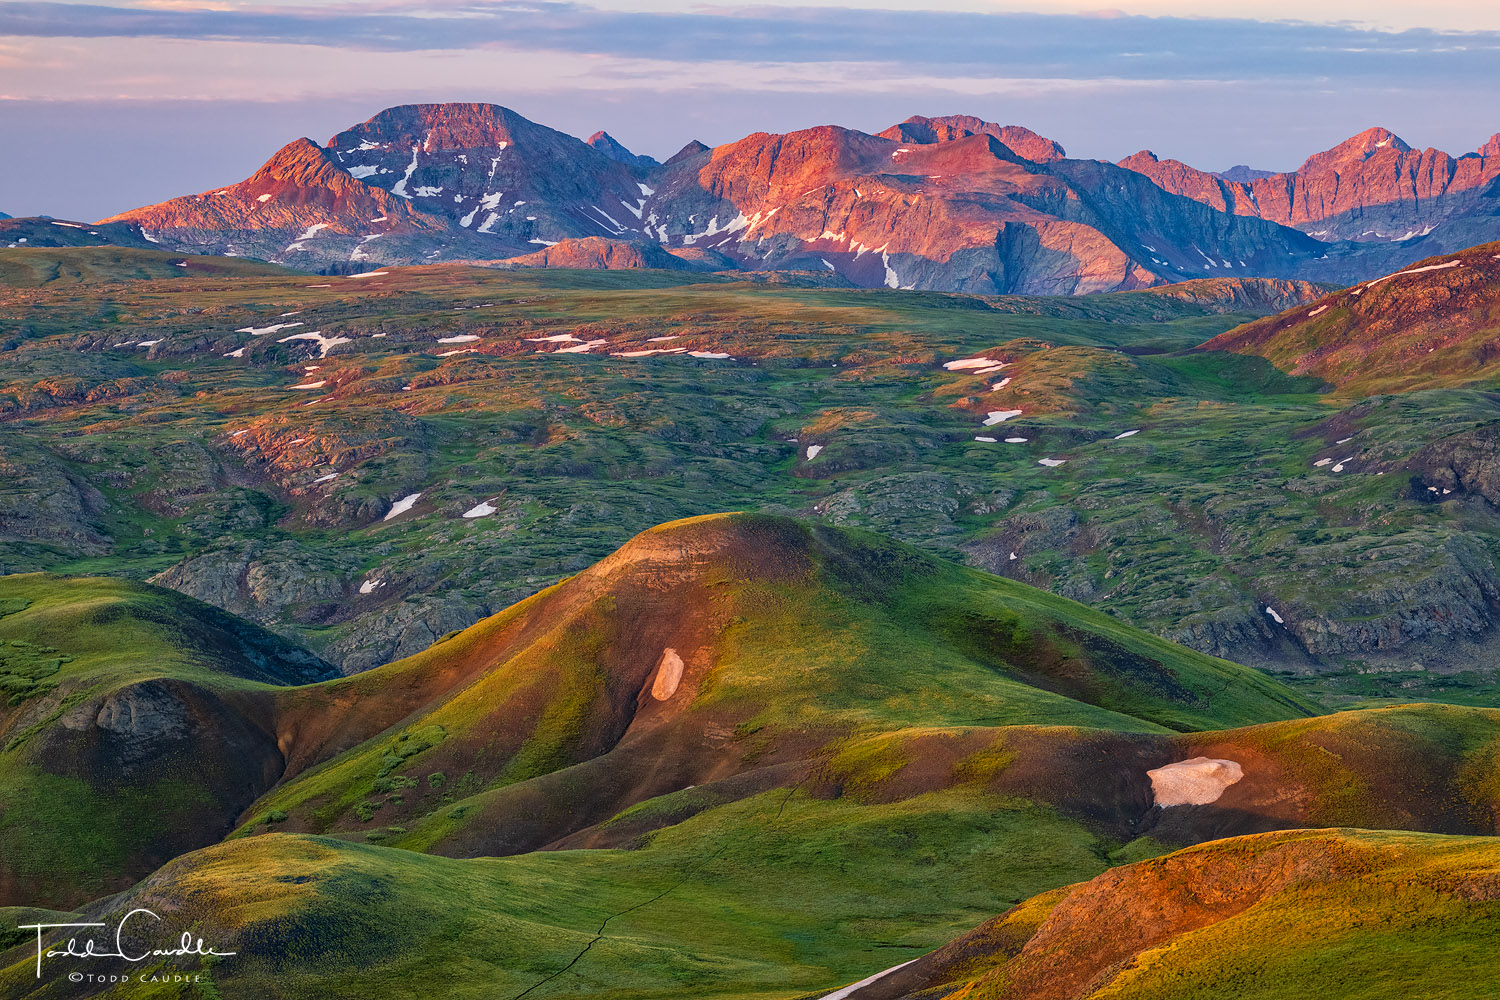 The Colorado Trail cuts across the tundra near Stony Pass, on its meadering way to the mighty Grenadier Range in the distance...